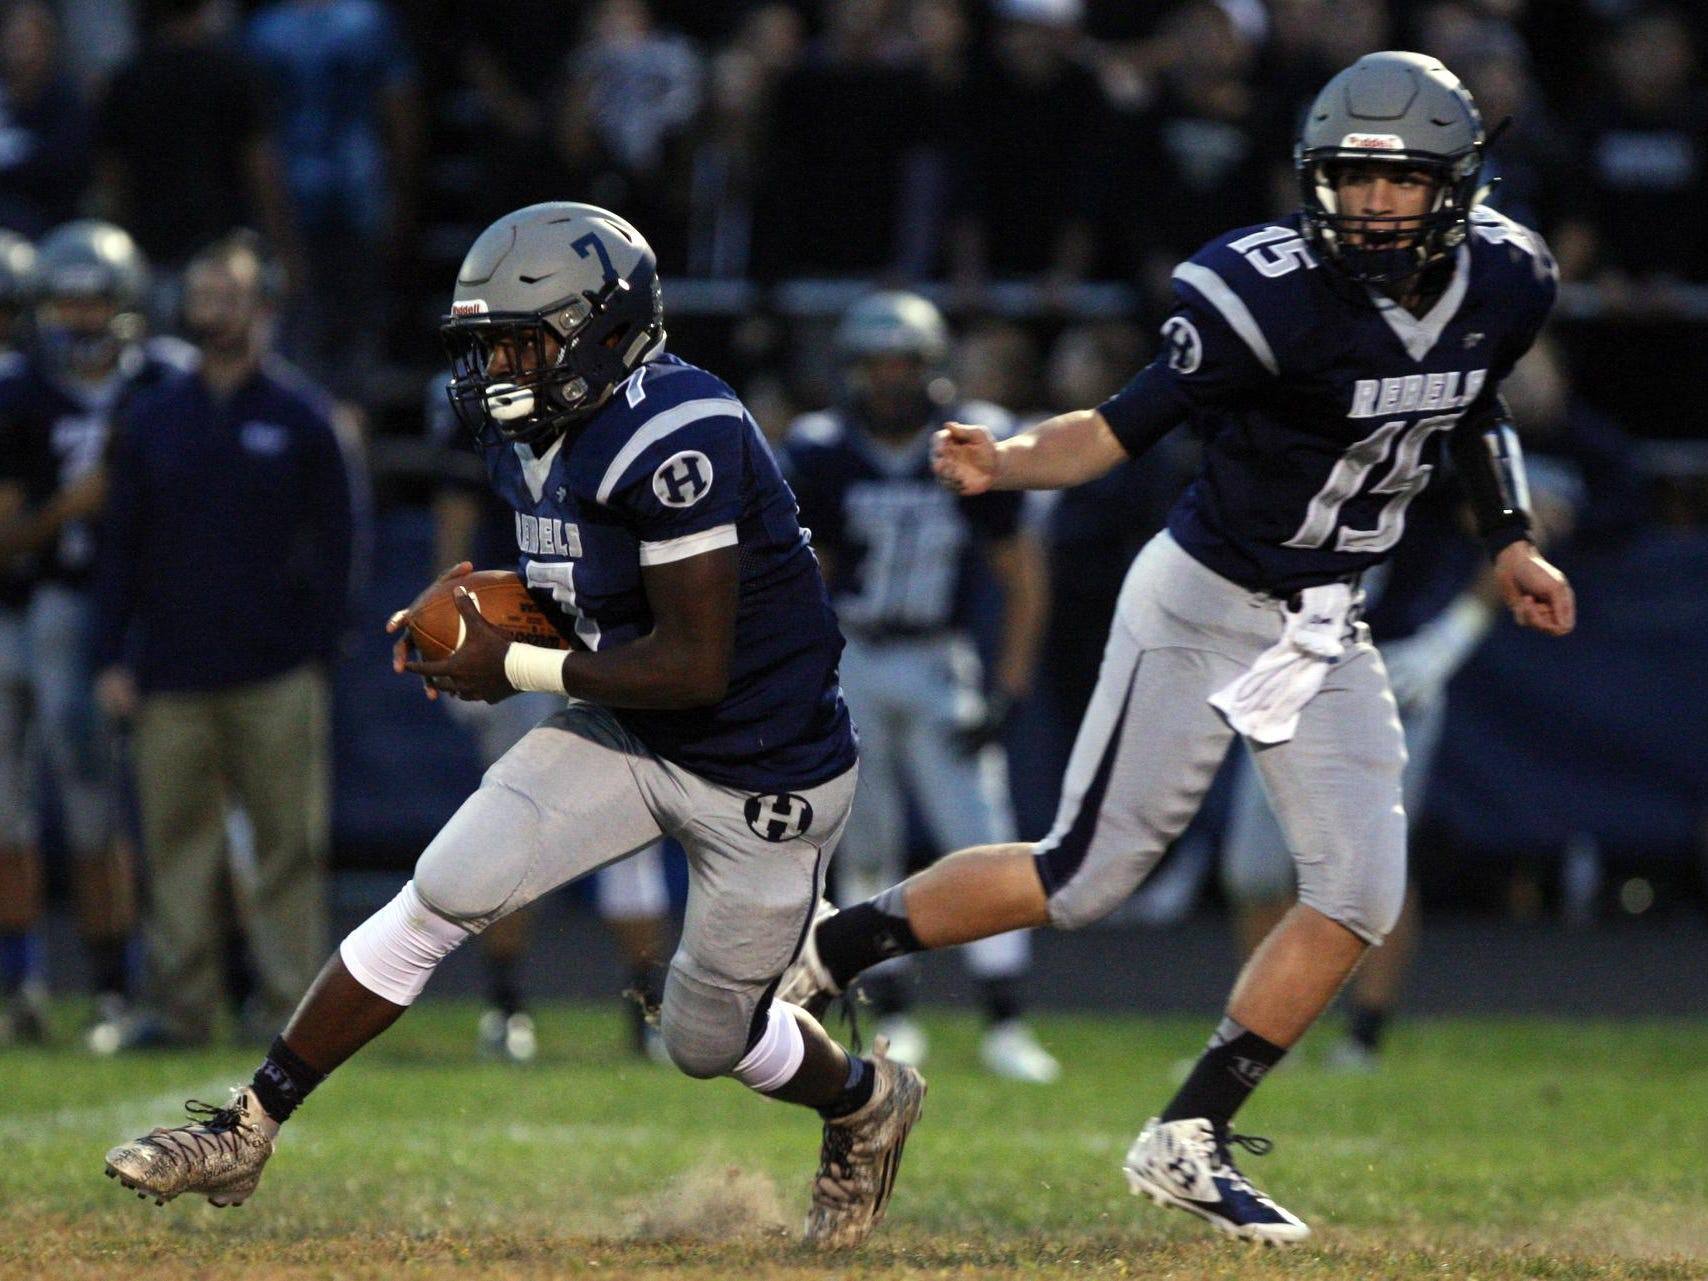 Mark Iacobino, #15 Howell, hands off to Mekai Gandy, #7, as they play Freehold Township in a football game Friday, September 25, 2015, at Howell High School.